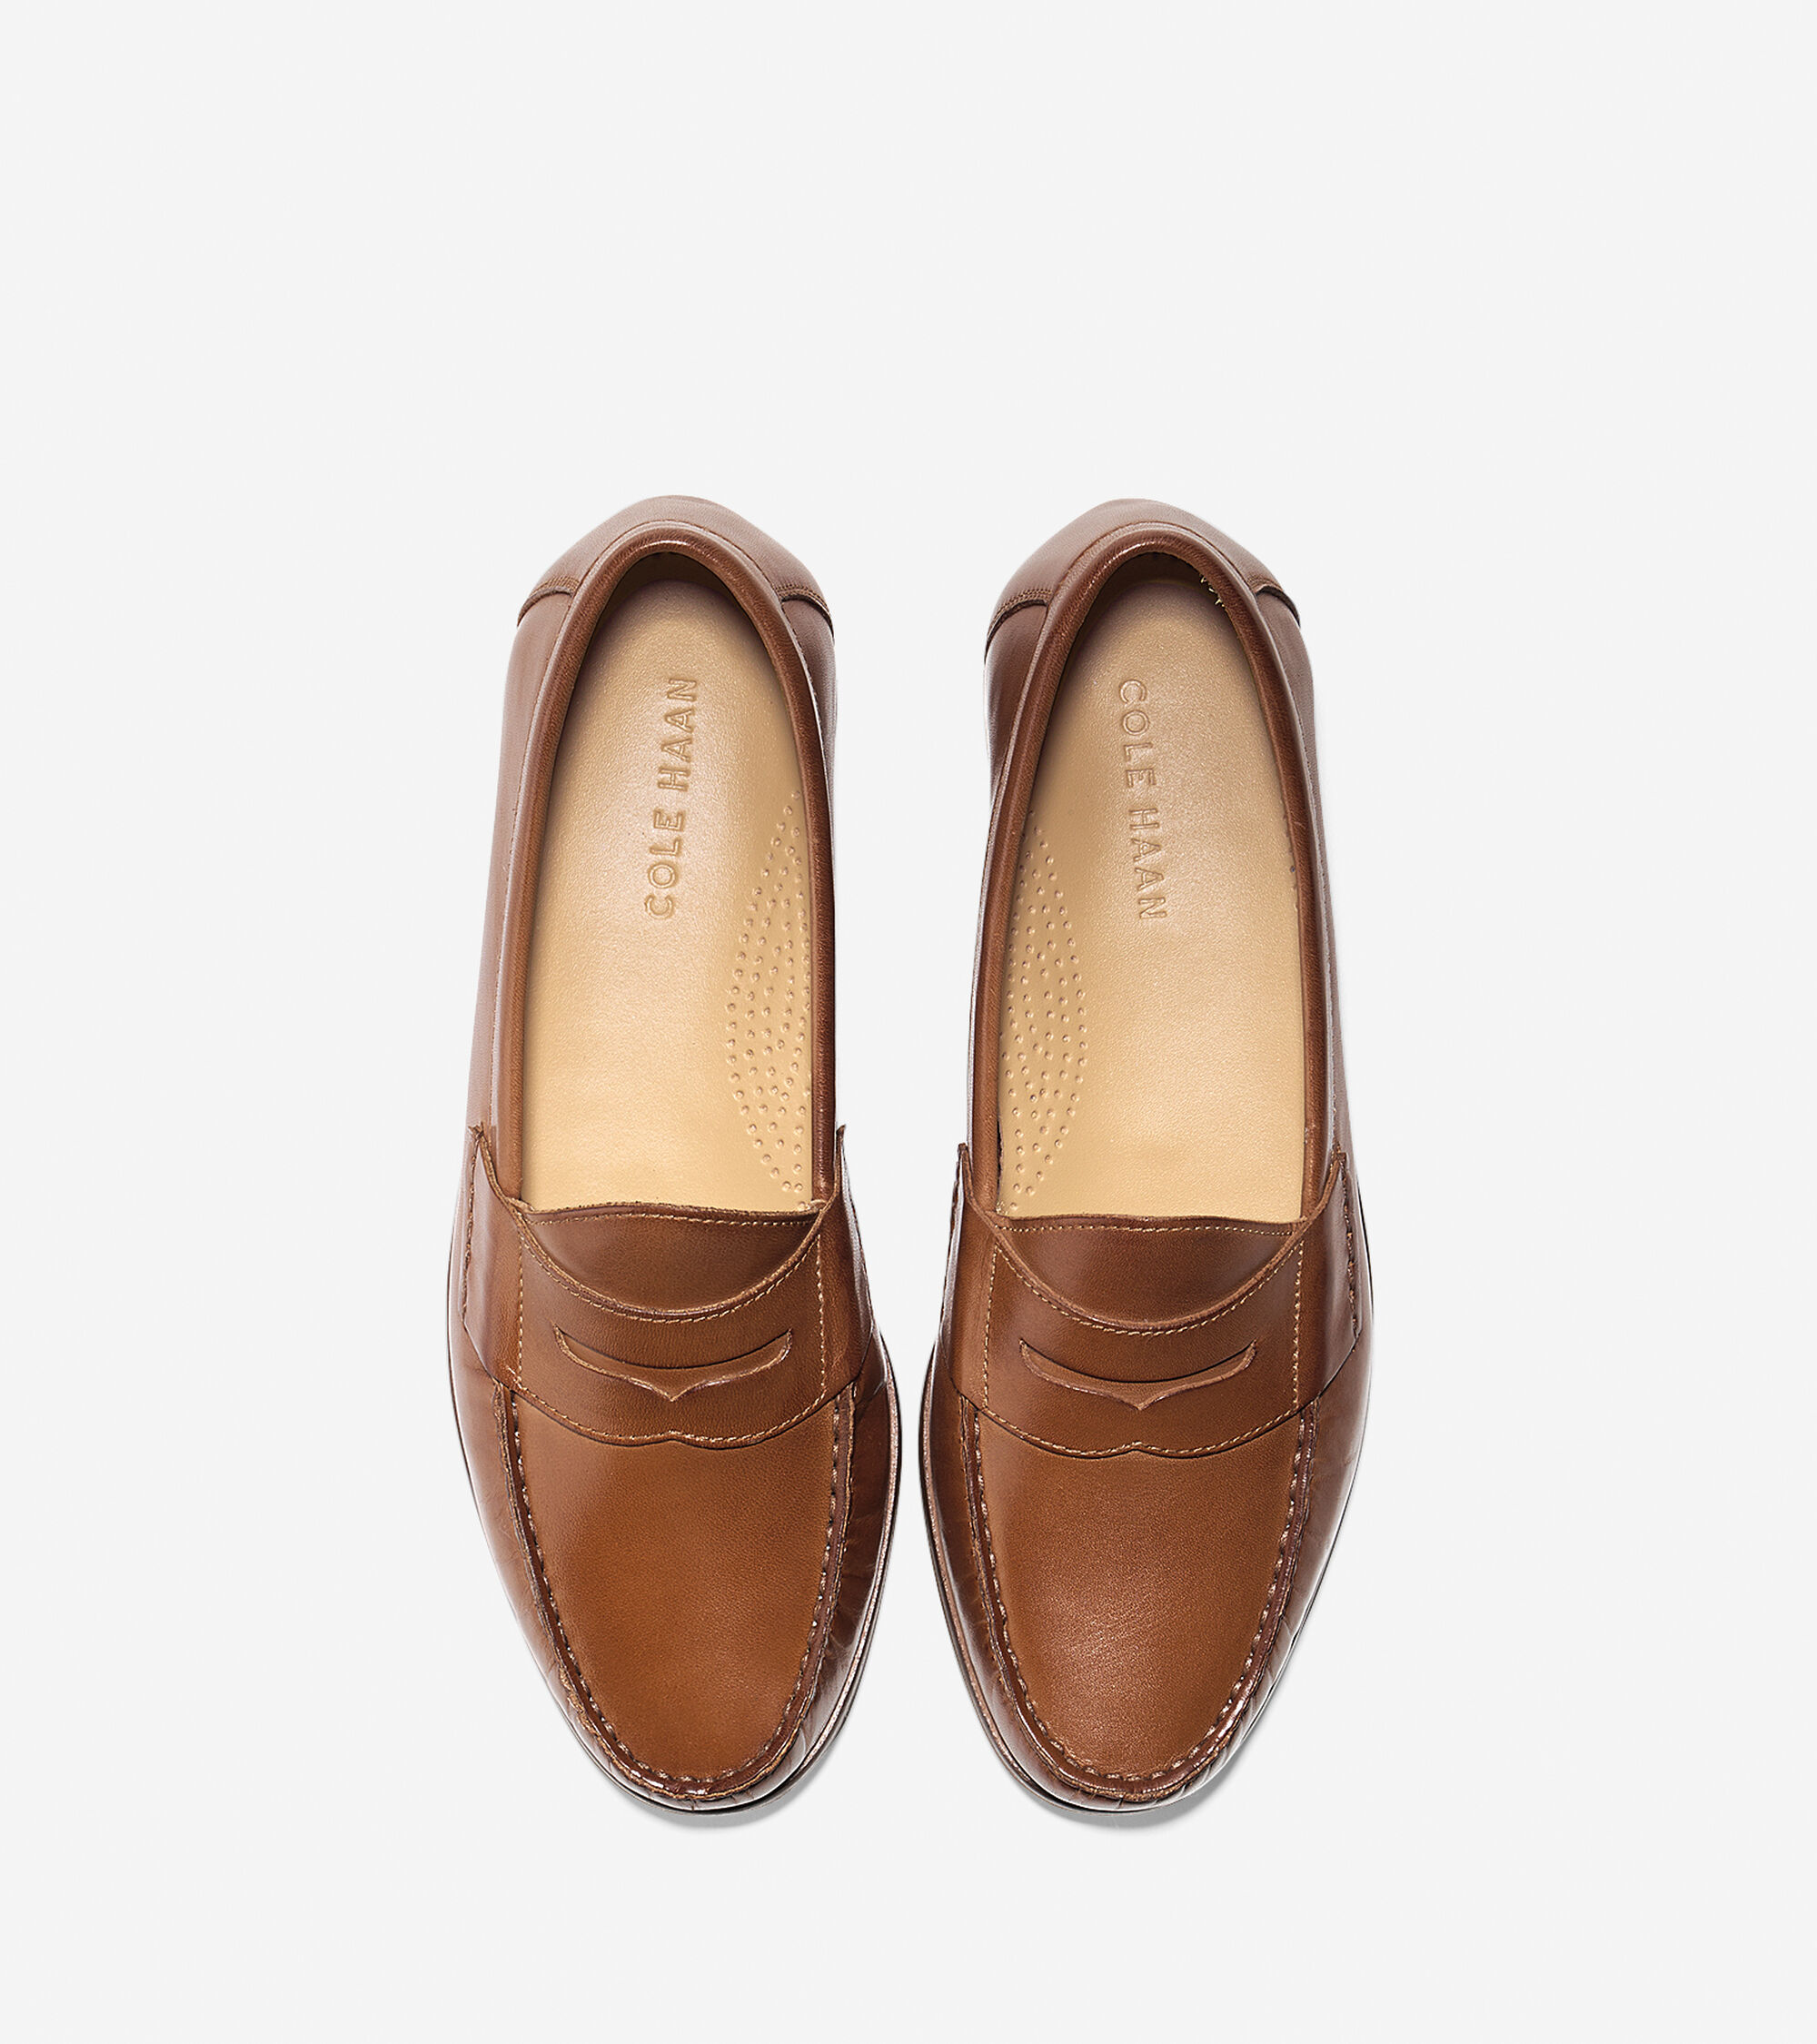 94800bcee42 Ascot Penny Loafer  Ascot Penny Loafer ...